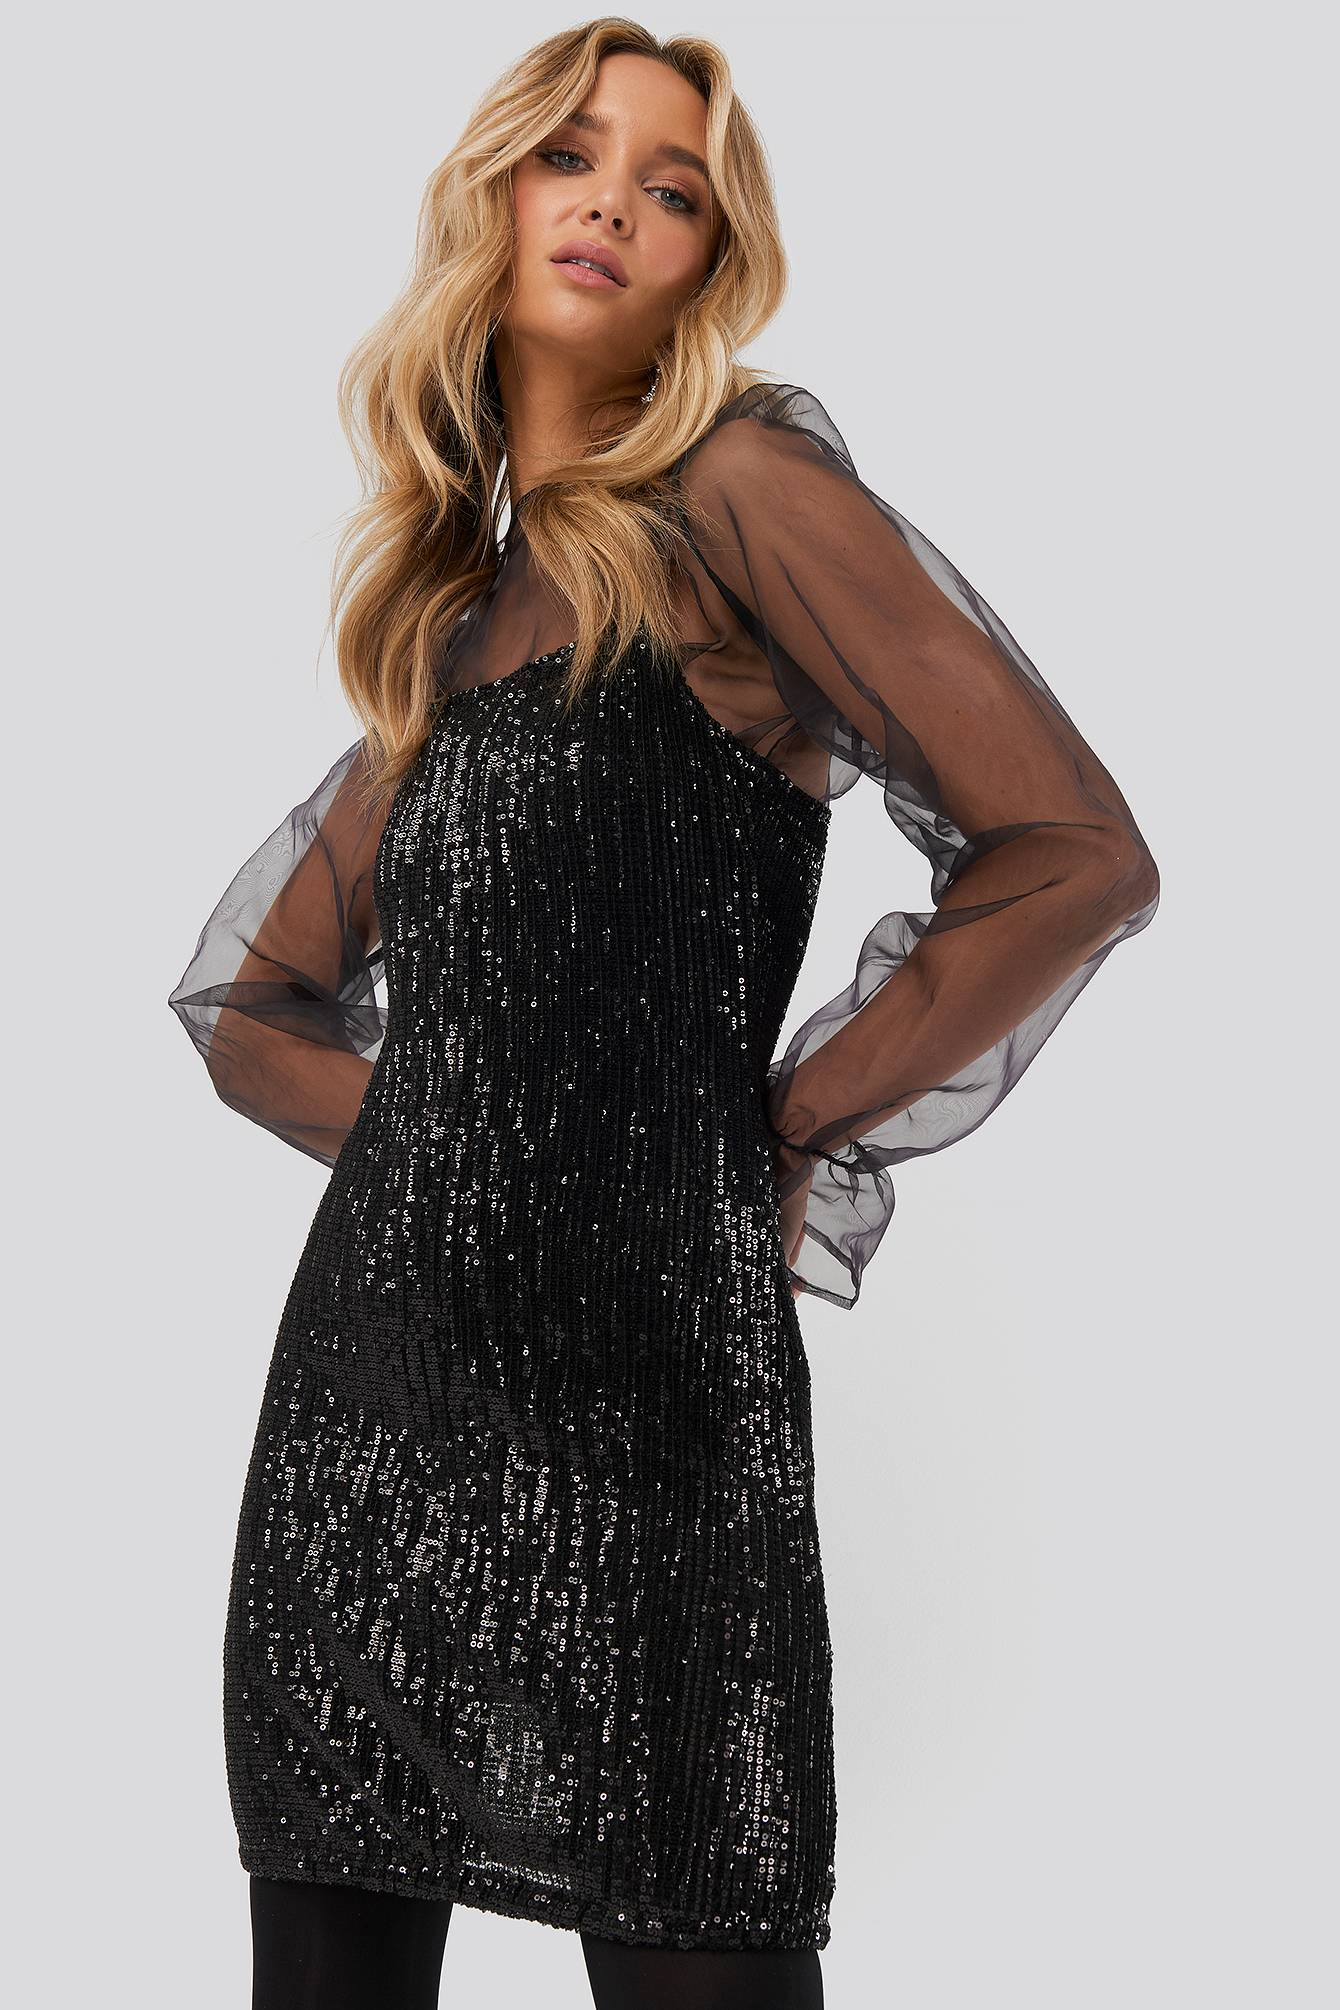 Image of NA-KD Party Spaghetti Strap Sequin Dress - Black